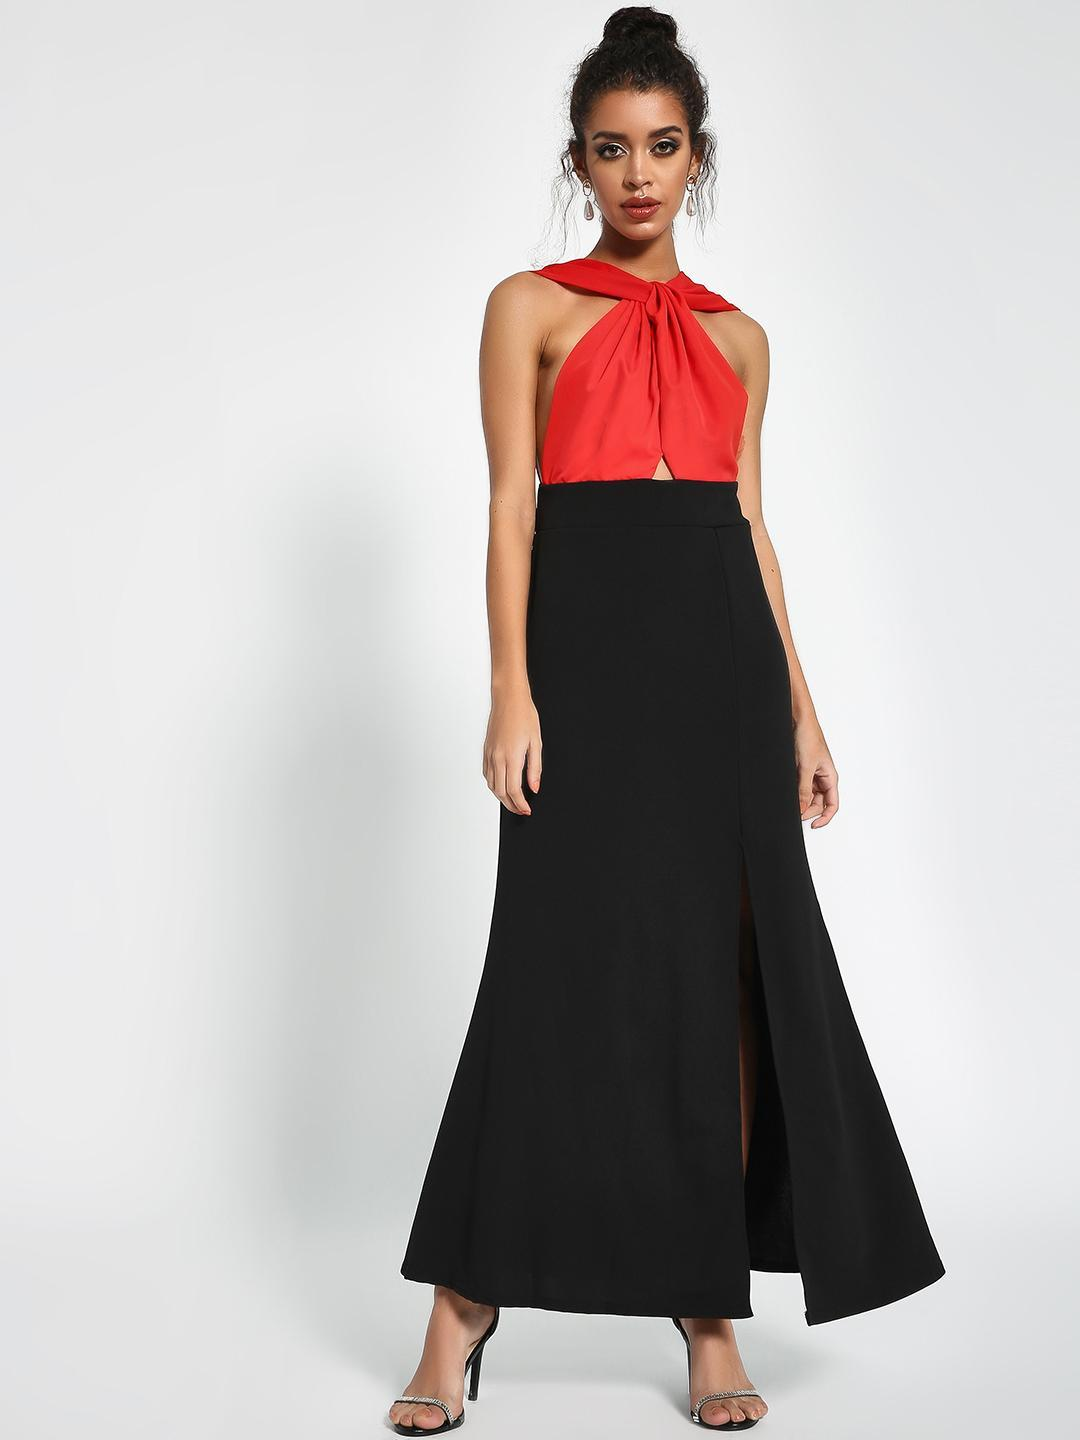 Origami Lily Red/Black Colour Block Maxi Dress 1